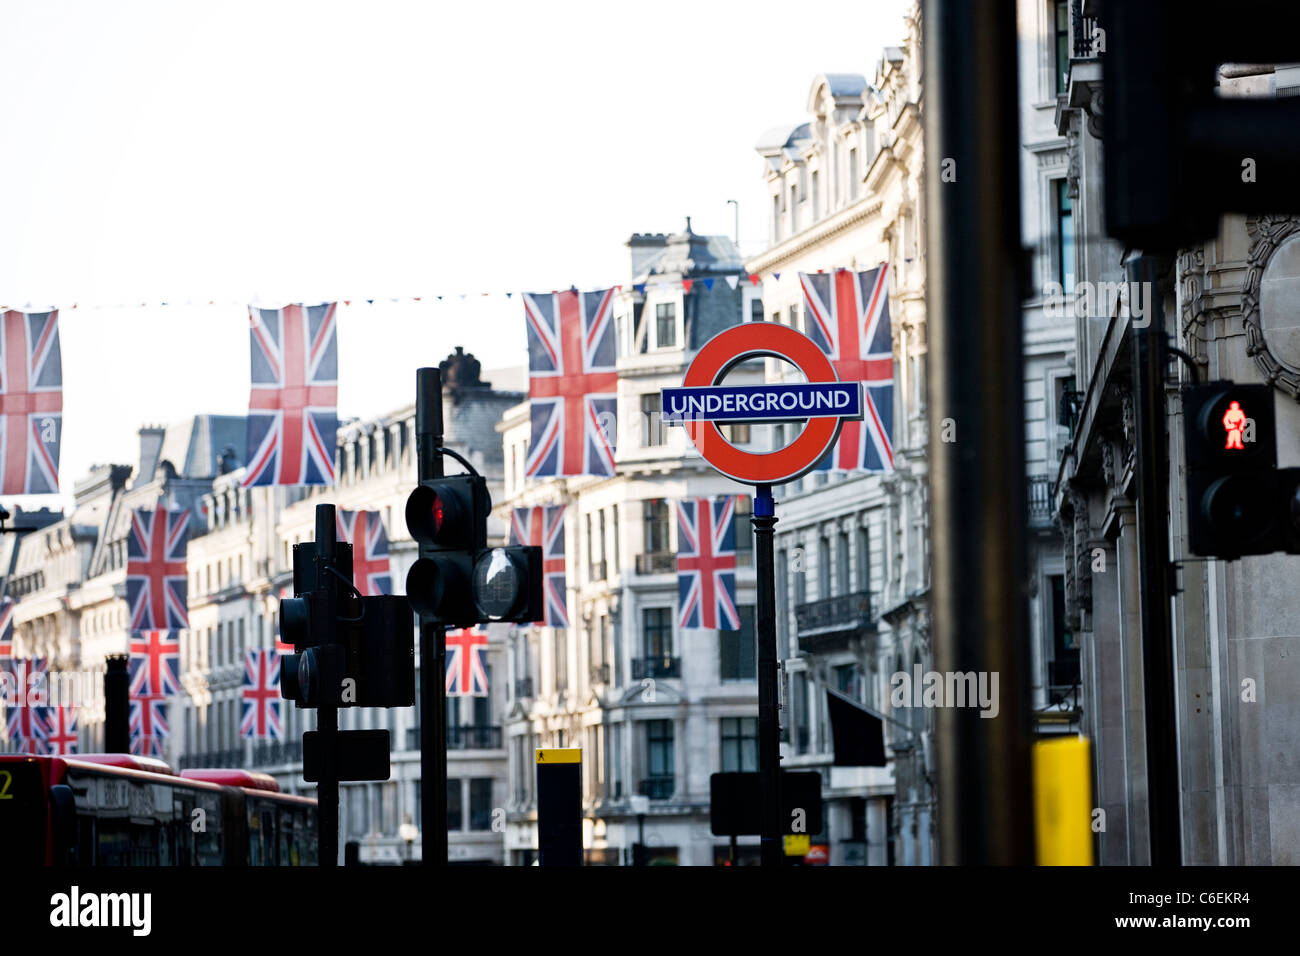 Union jack flags hanging on Regent Street, London - Stock Image